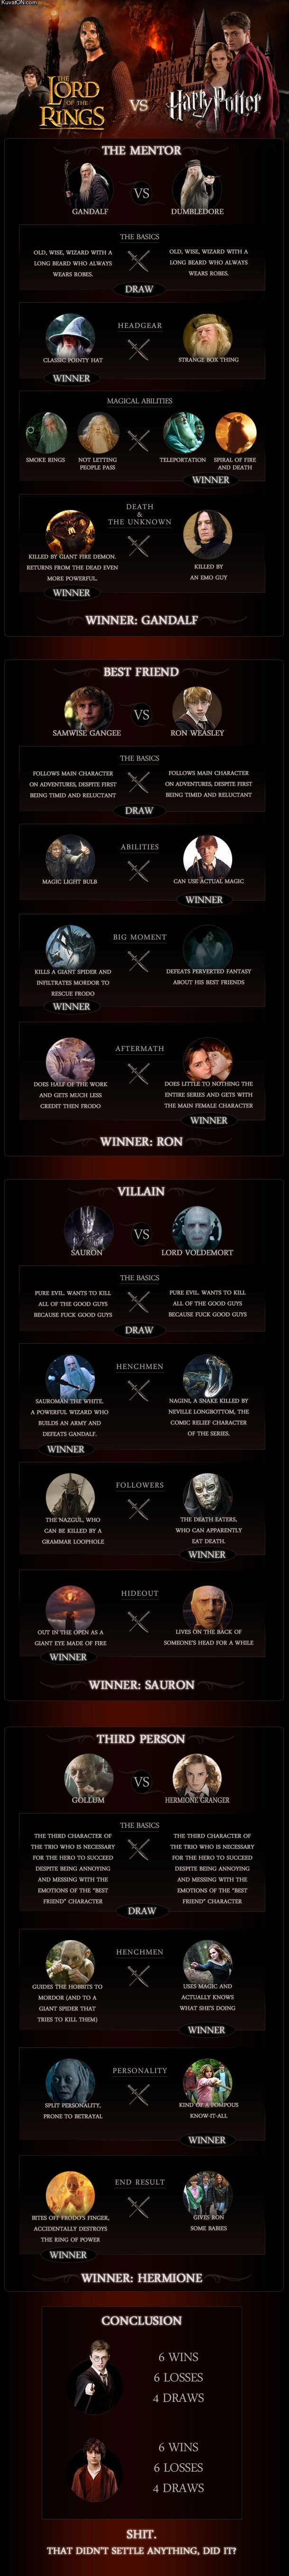 Lord of the Rings Vs. Harry Potter